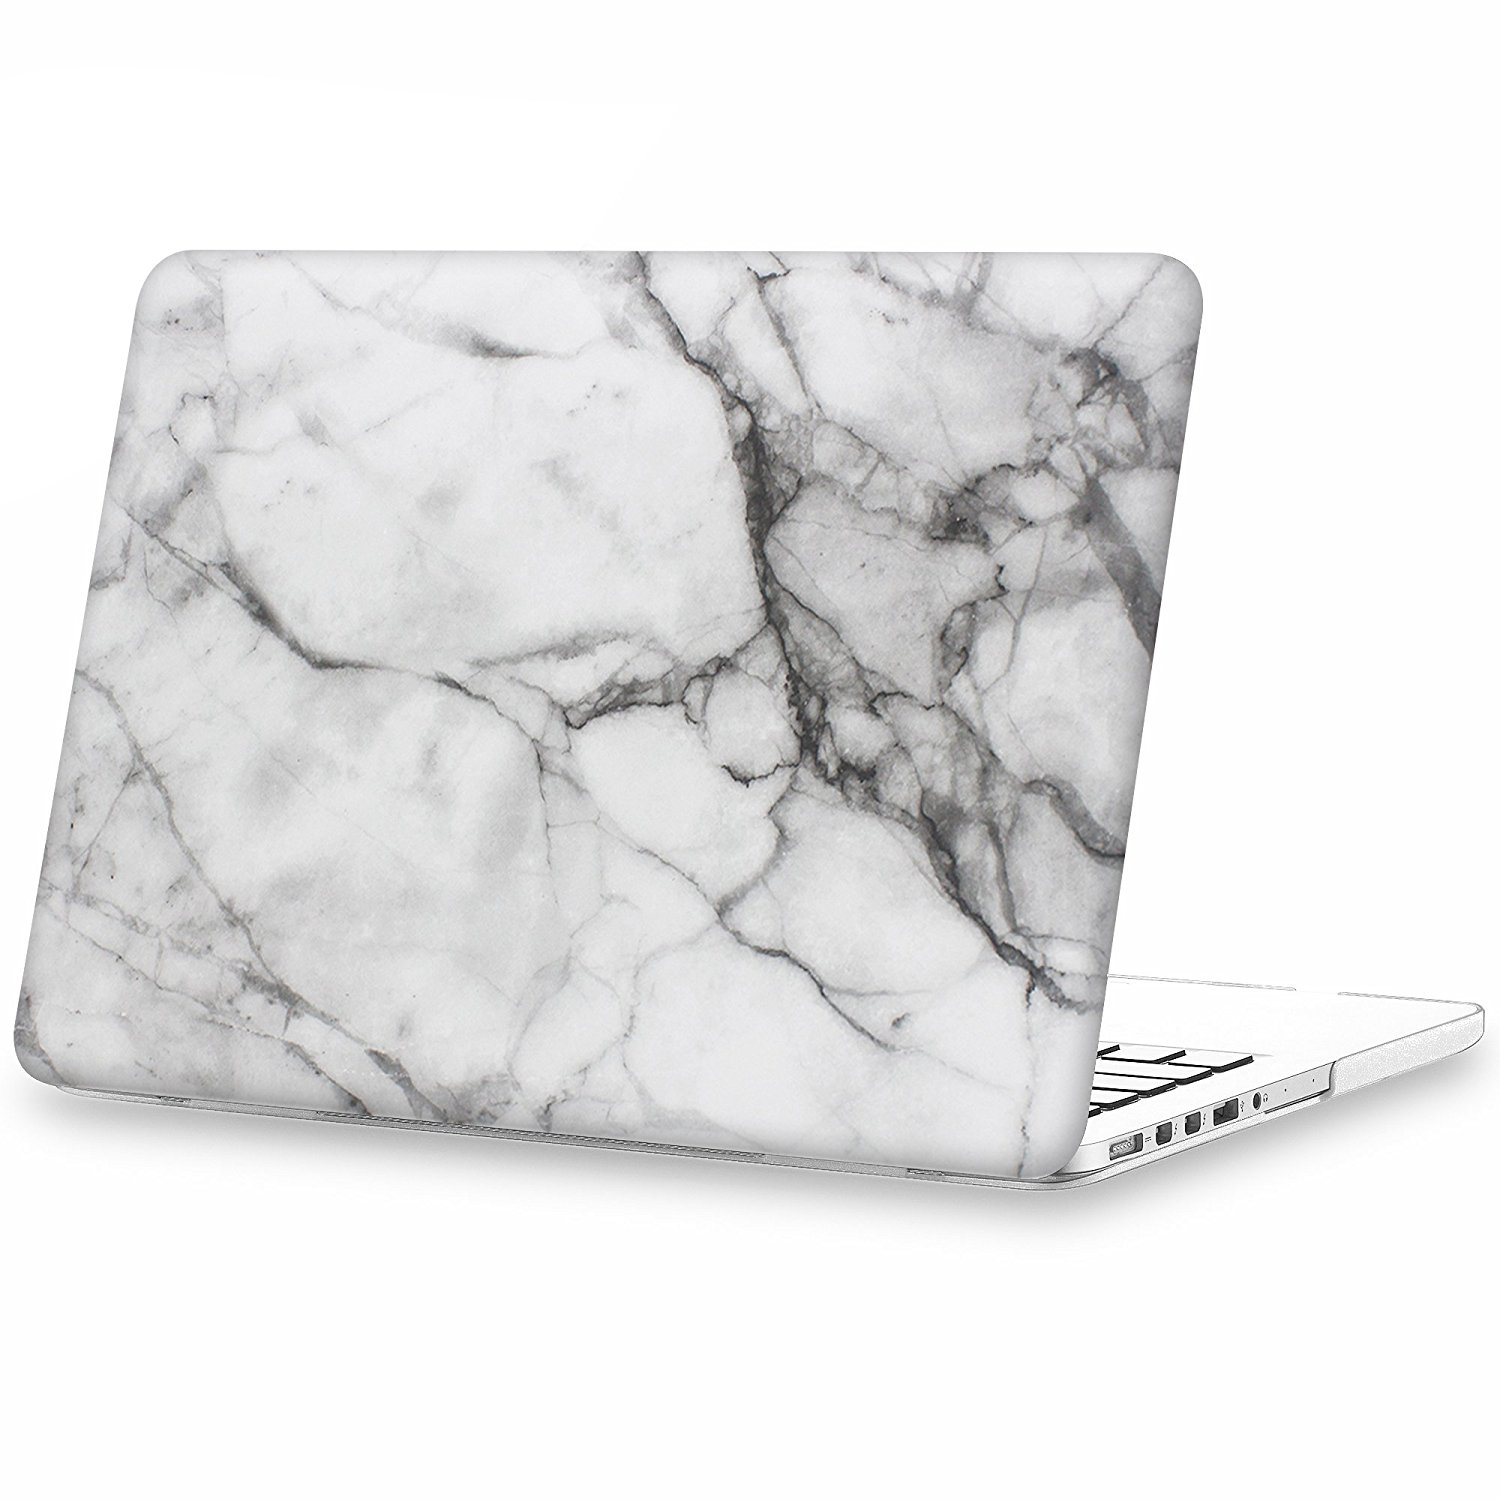 iCasso Macbook Retina 13 Inch Case Hard Marble Shell Protective Case Hard Cover Case For Apple Laptop case Pro 13Inch Retina ModelA1425/A1502 -White Marble Pattern